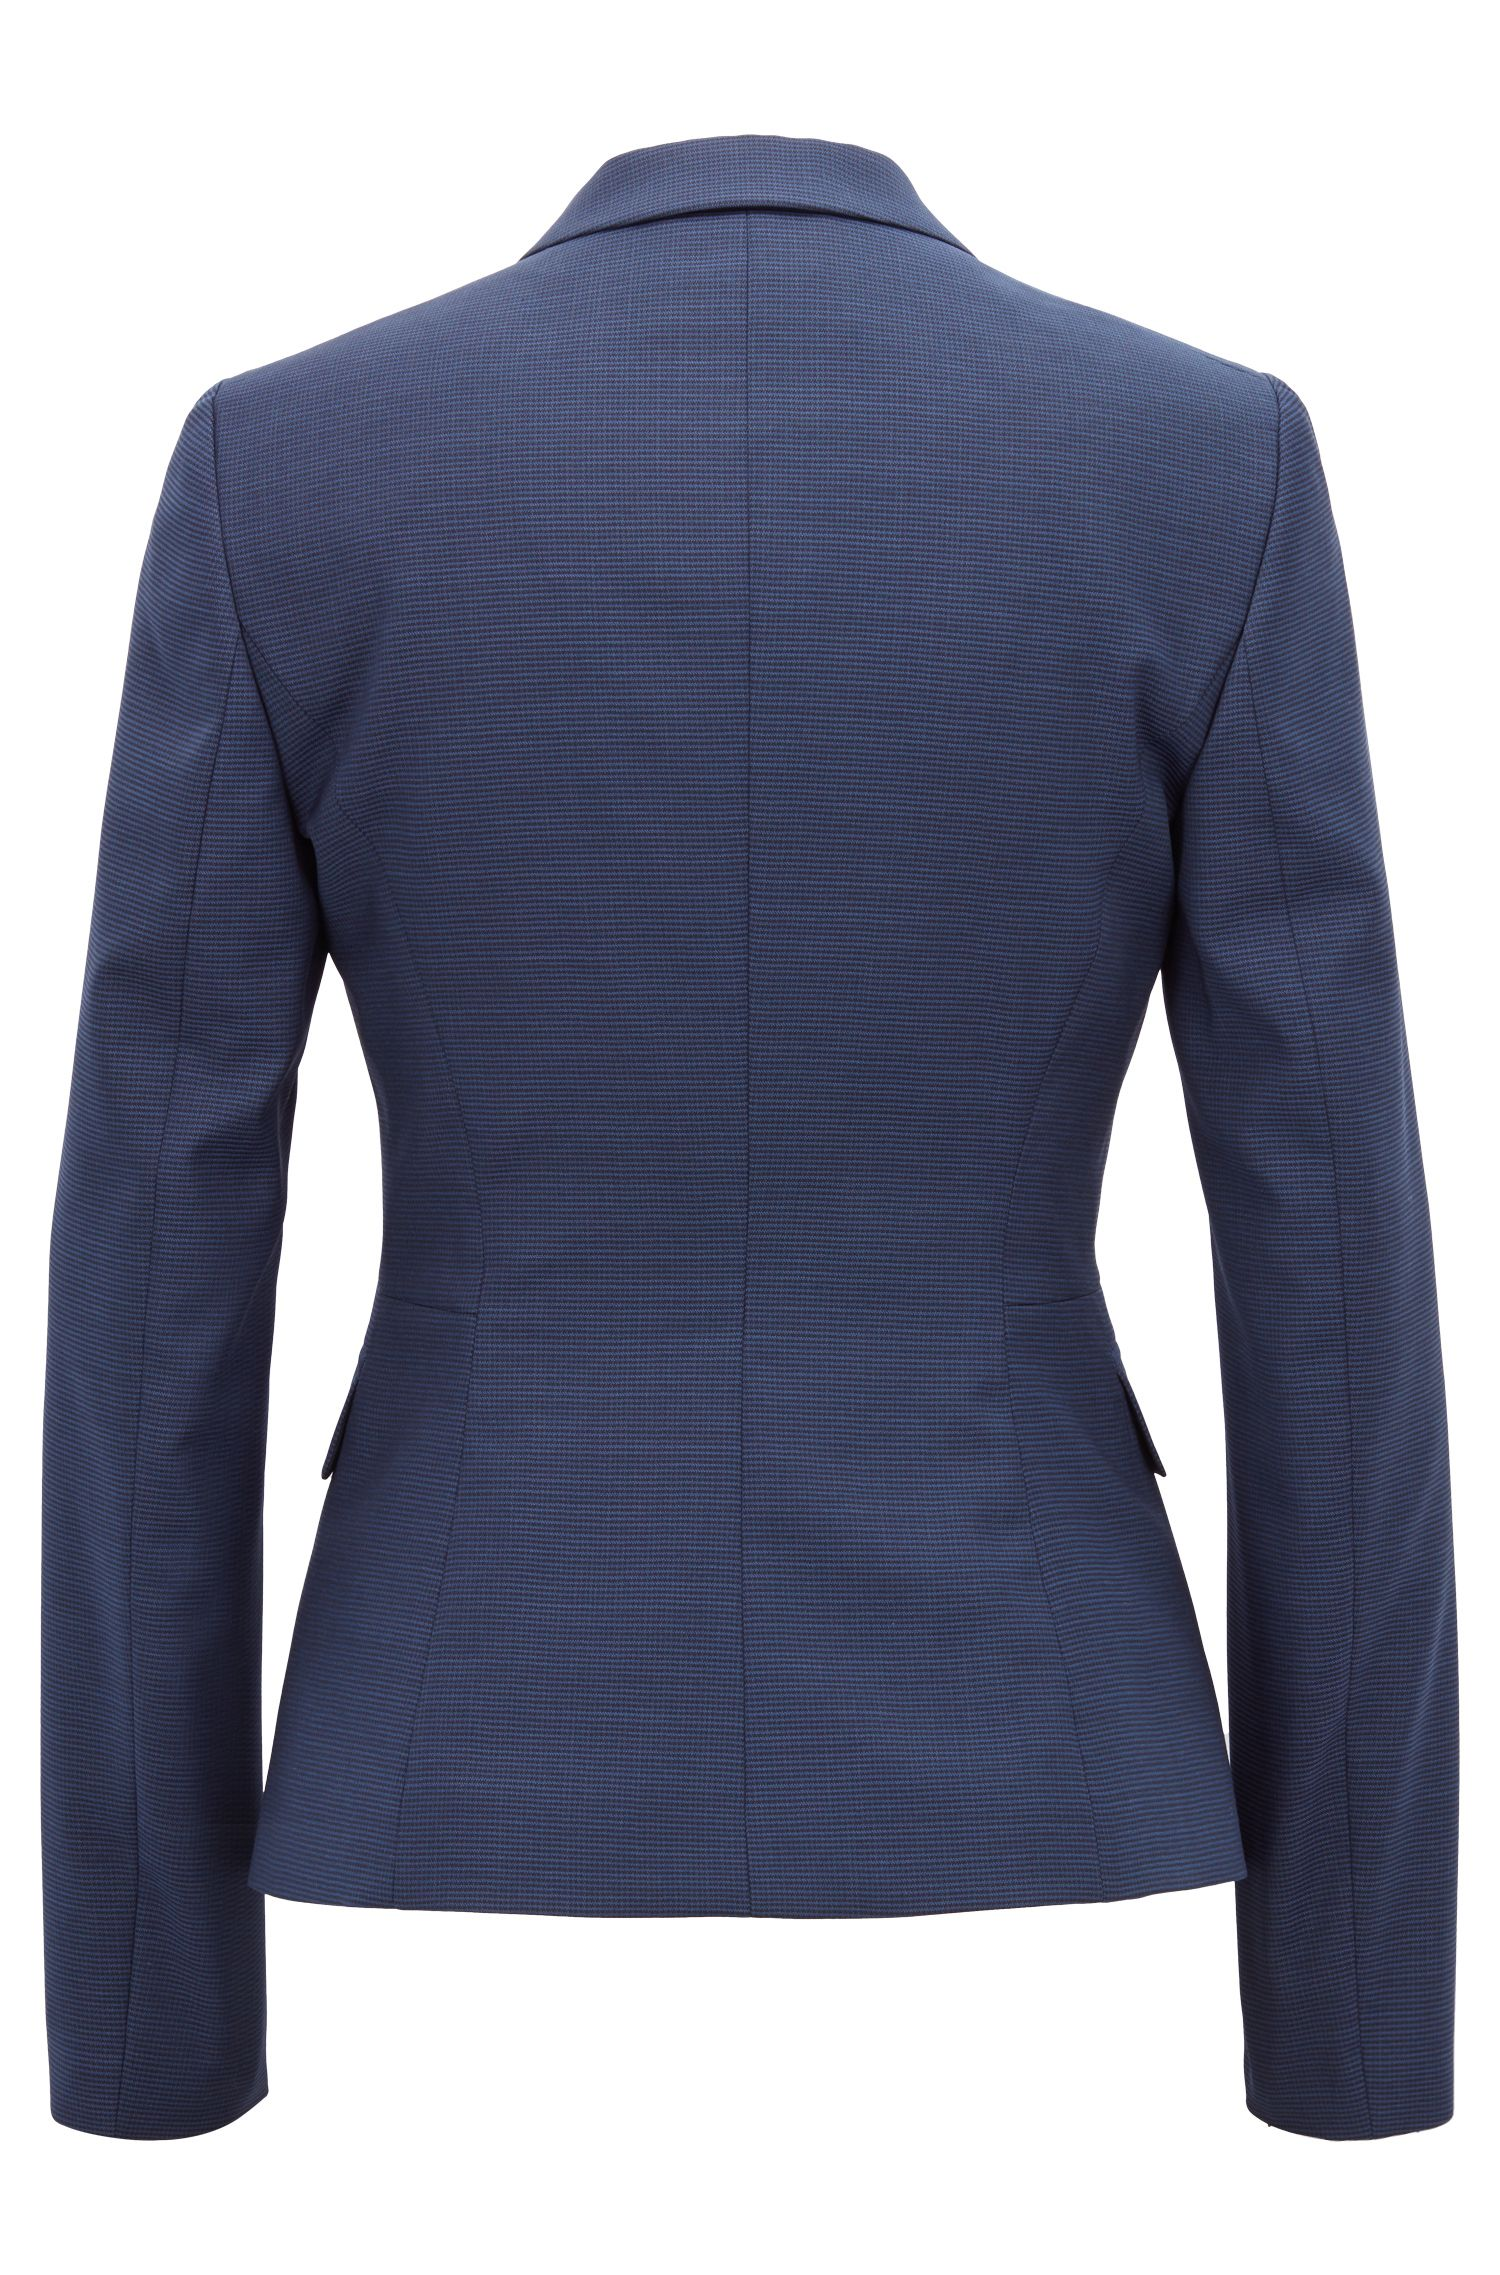 Regular-fit jacket in houndstooth virgin wool with cufflink closure, Patterned